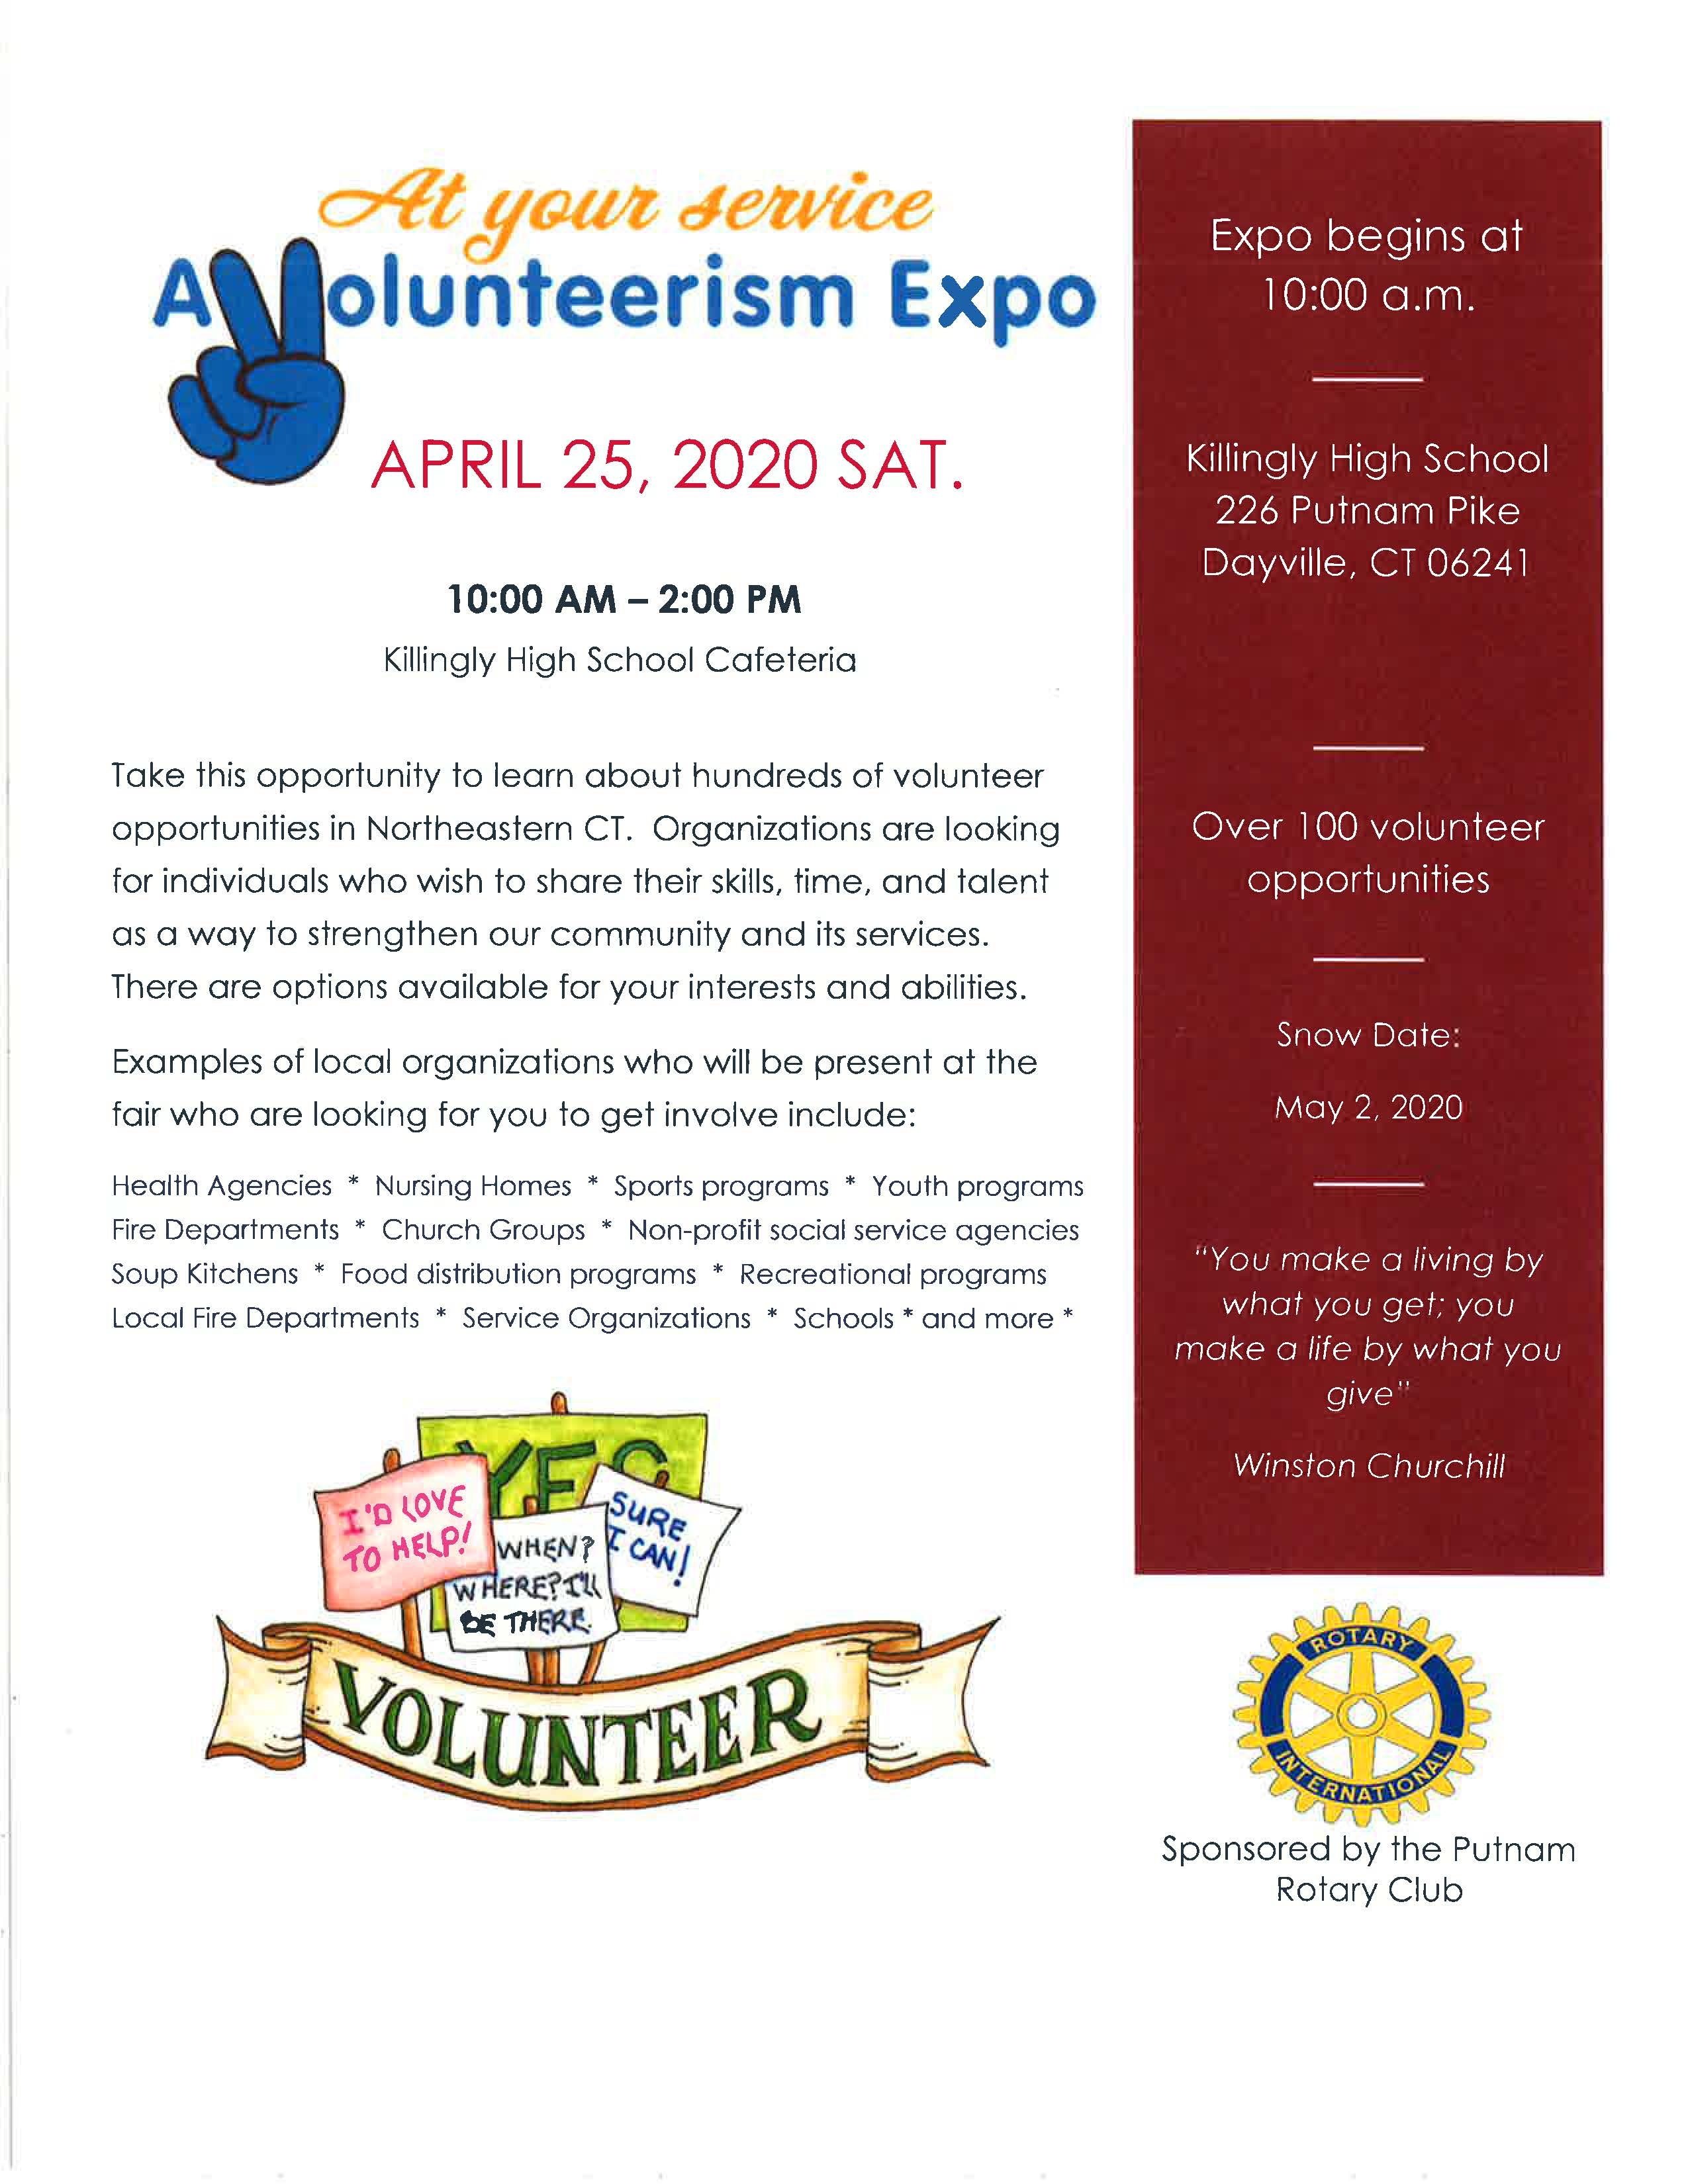 CANCELLED _ A Volunteerism Expo @ Killingly High School